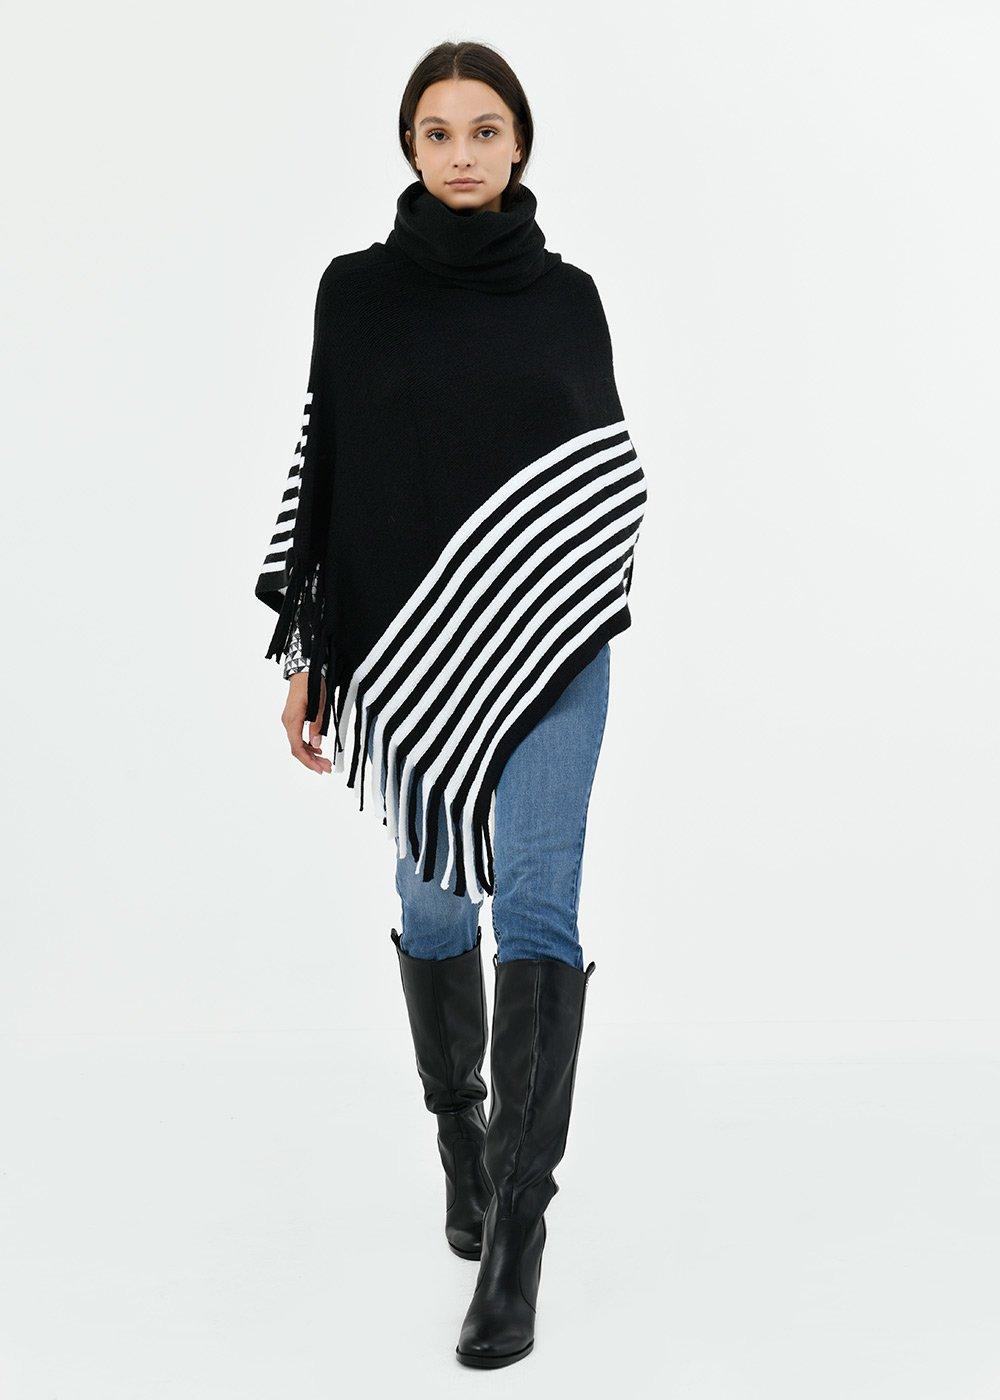 Mantella Marya con righe e frange  - Black / White Stripes - Donna